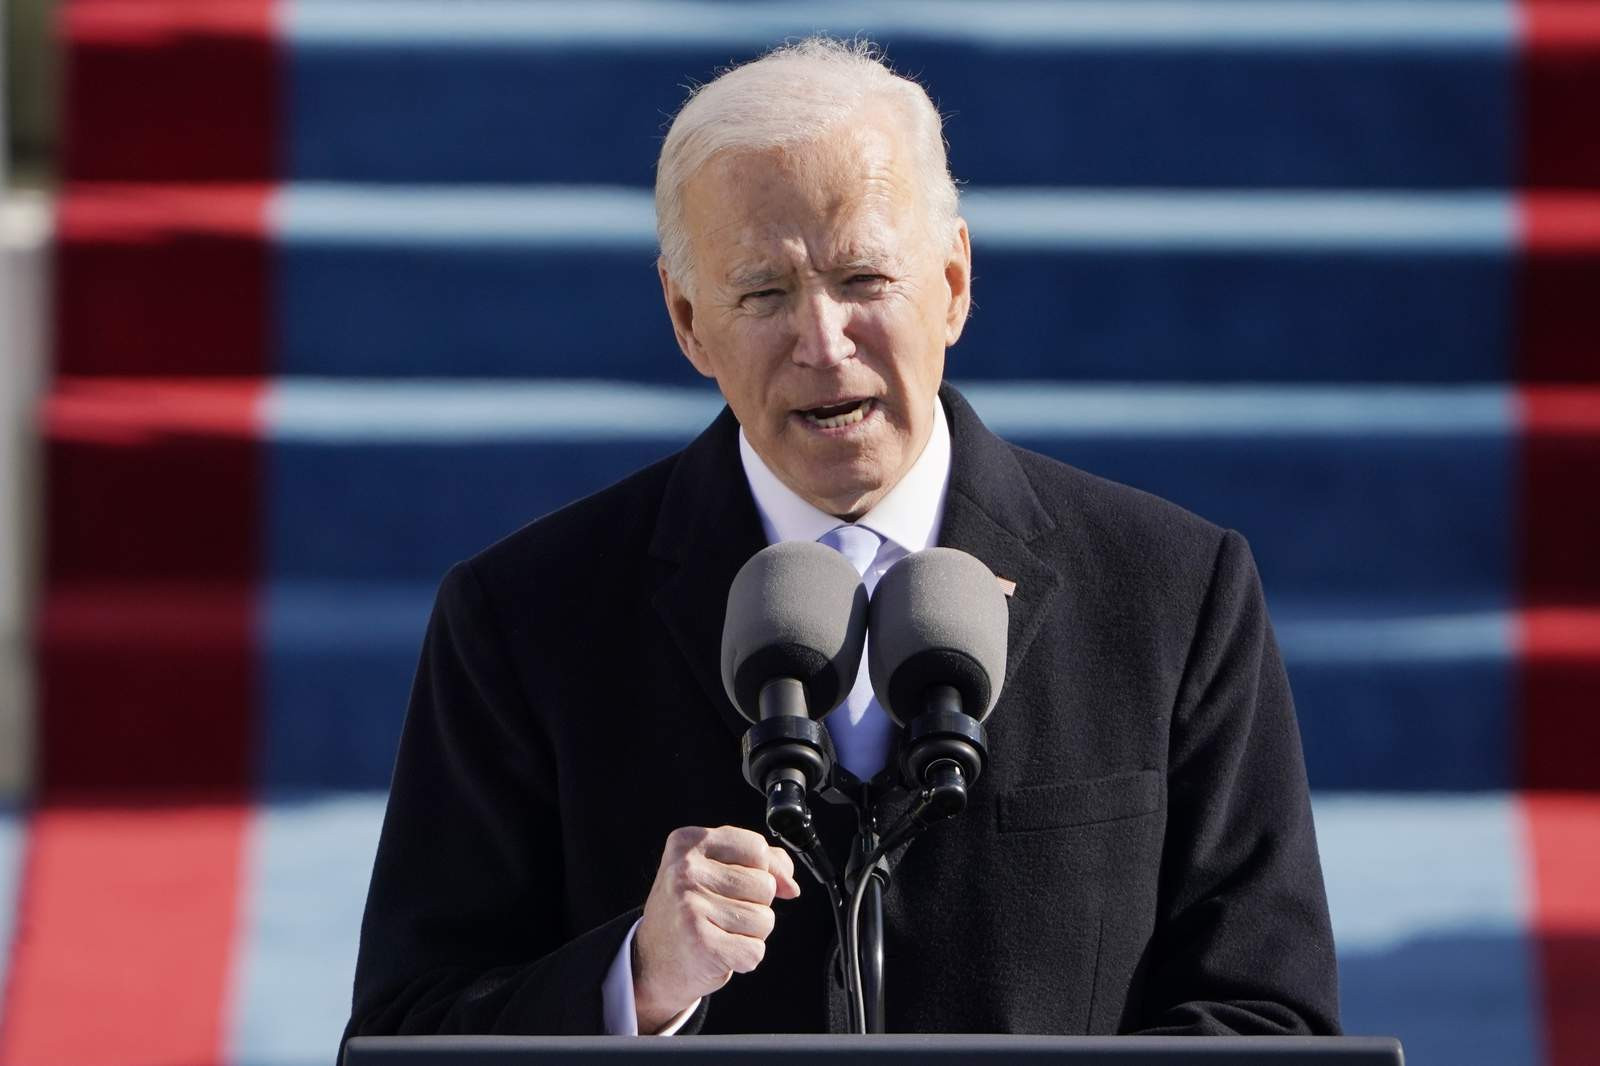 """If you're ever working with me and I hear you treating another colleague with disrespect, I will fire you on the spot"" - President Biden warns his incoming presidential appointees (video)"